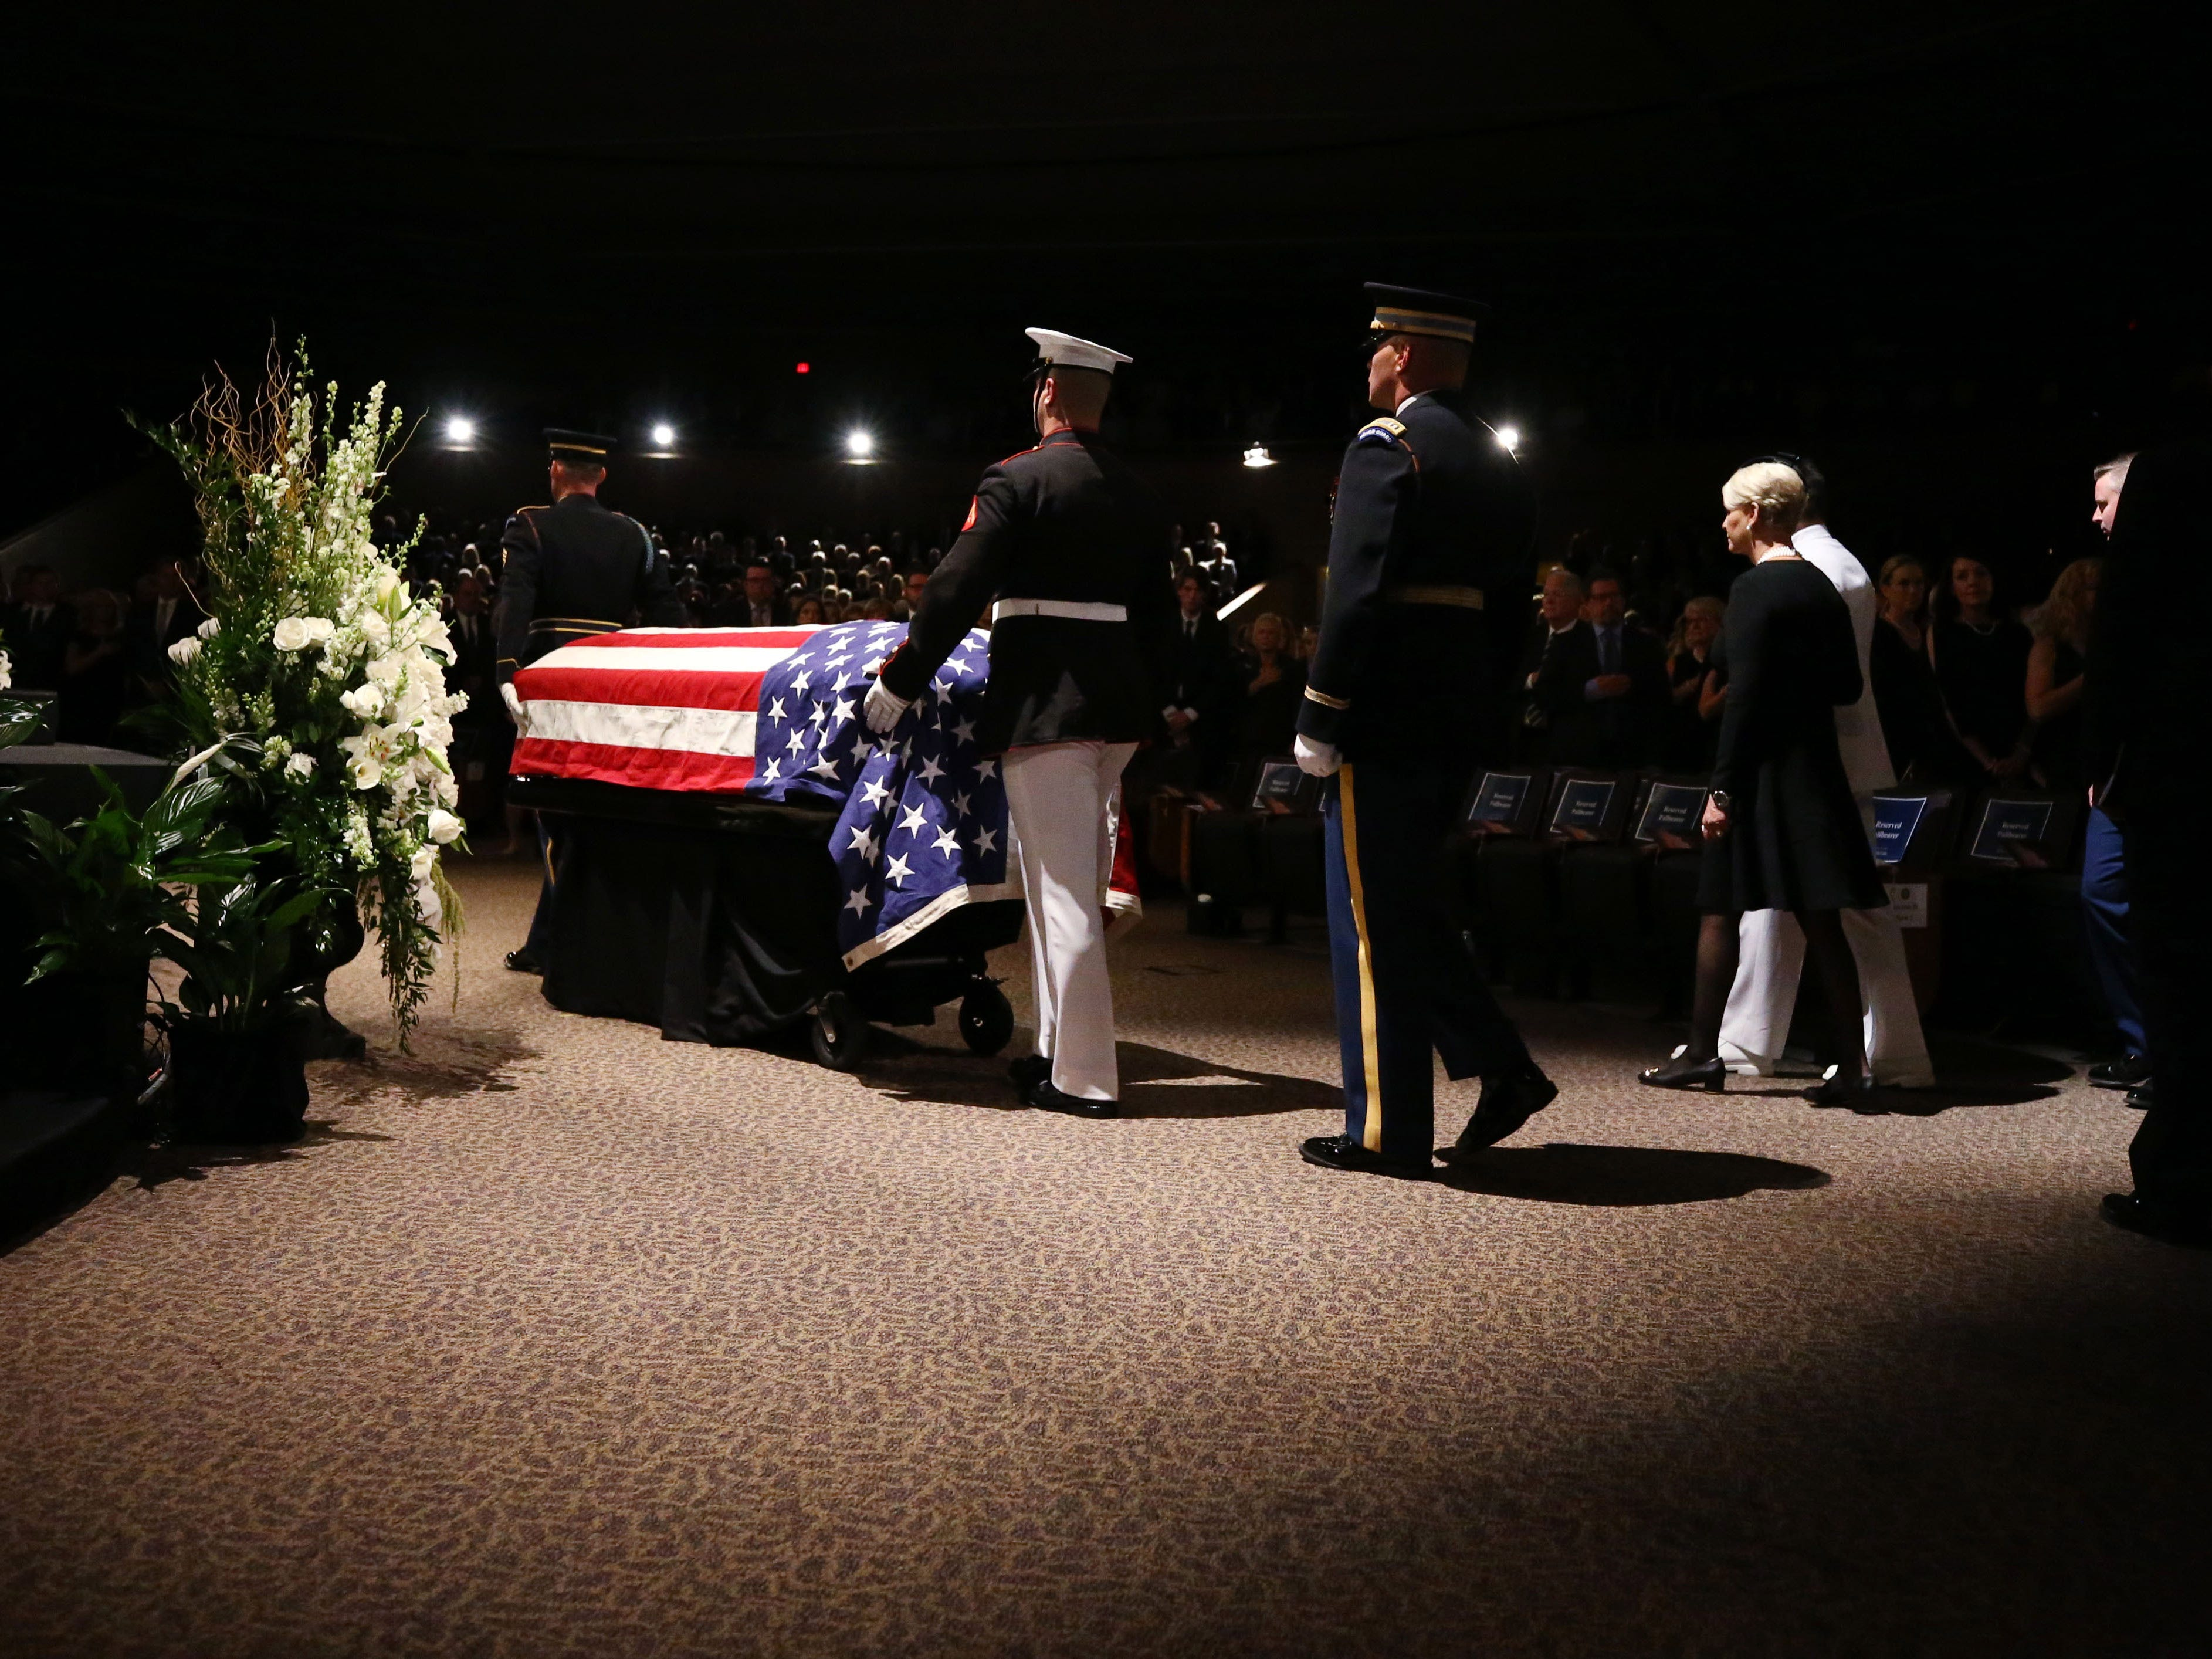 The flag draped casket of Sen. John McCain arrives at a memorial service at the North Phoenix Baptist Church, Aug. 30, 2018, in Phoenix.